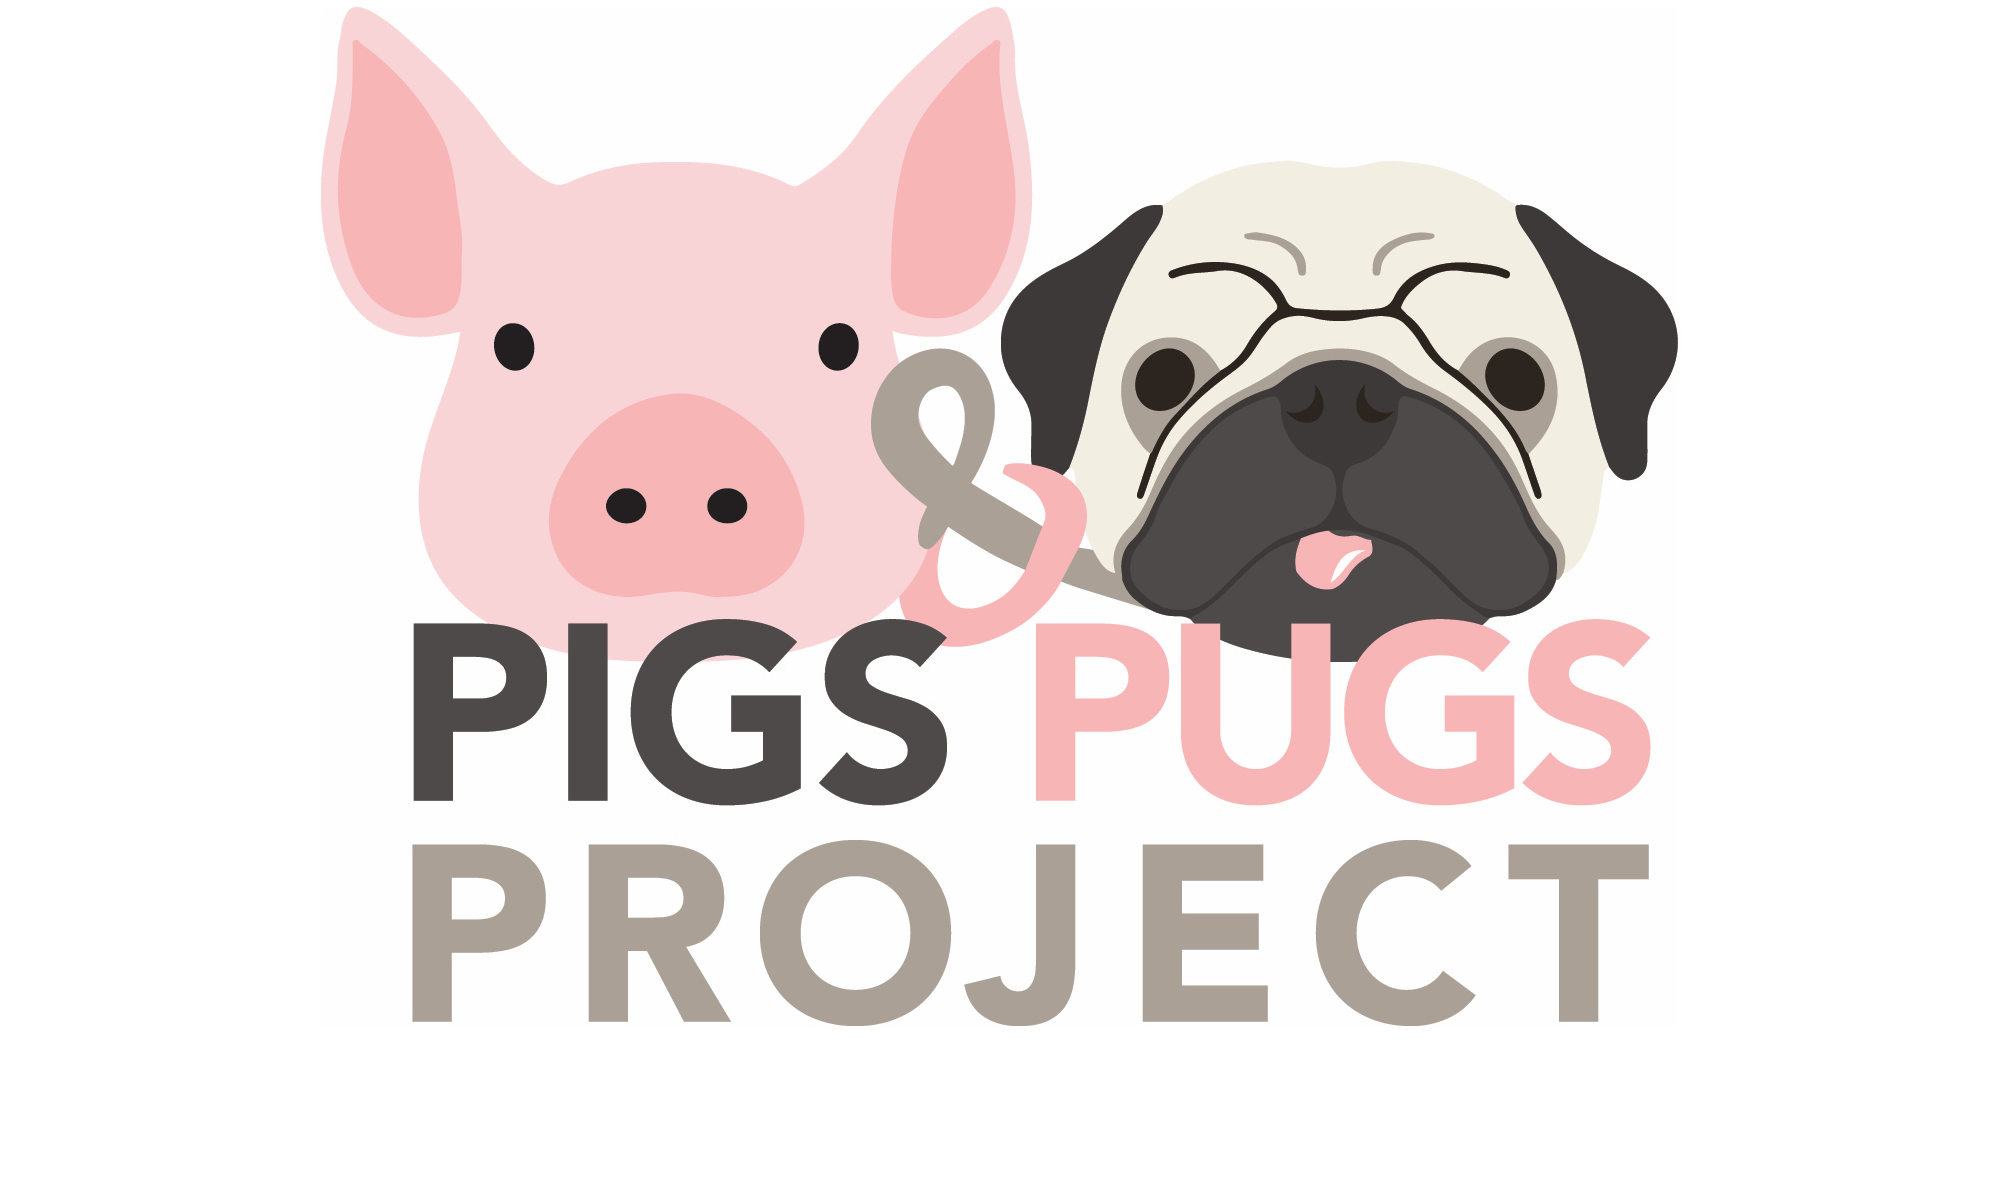 Pigs and Pugs Project